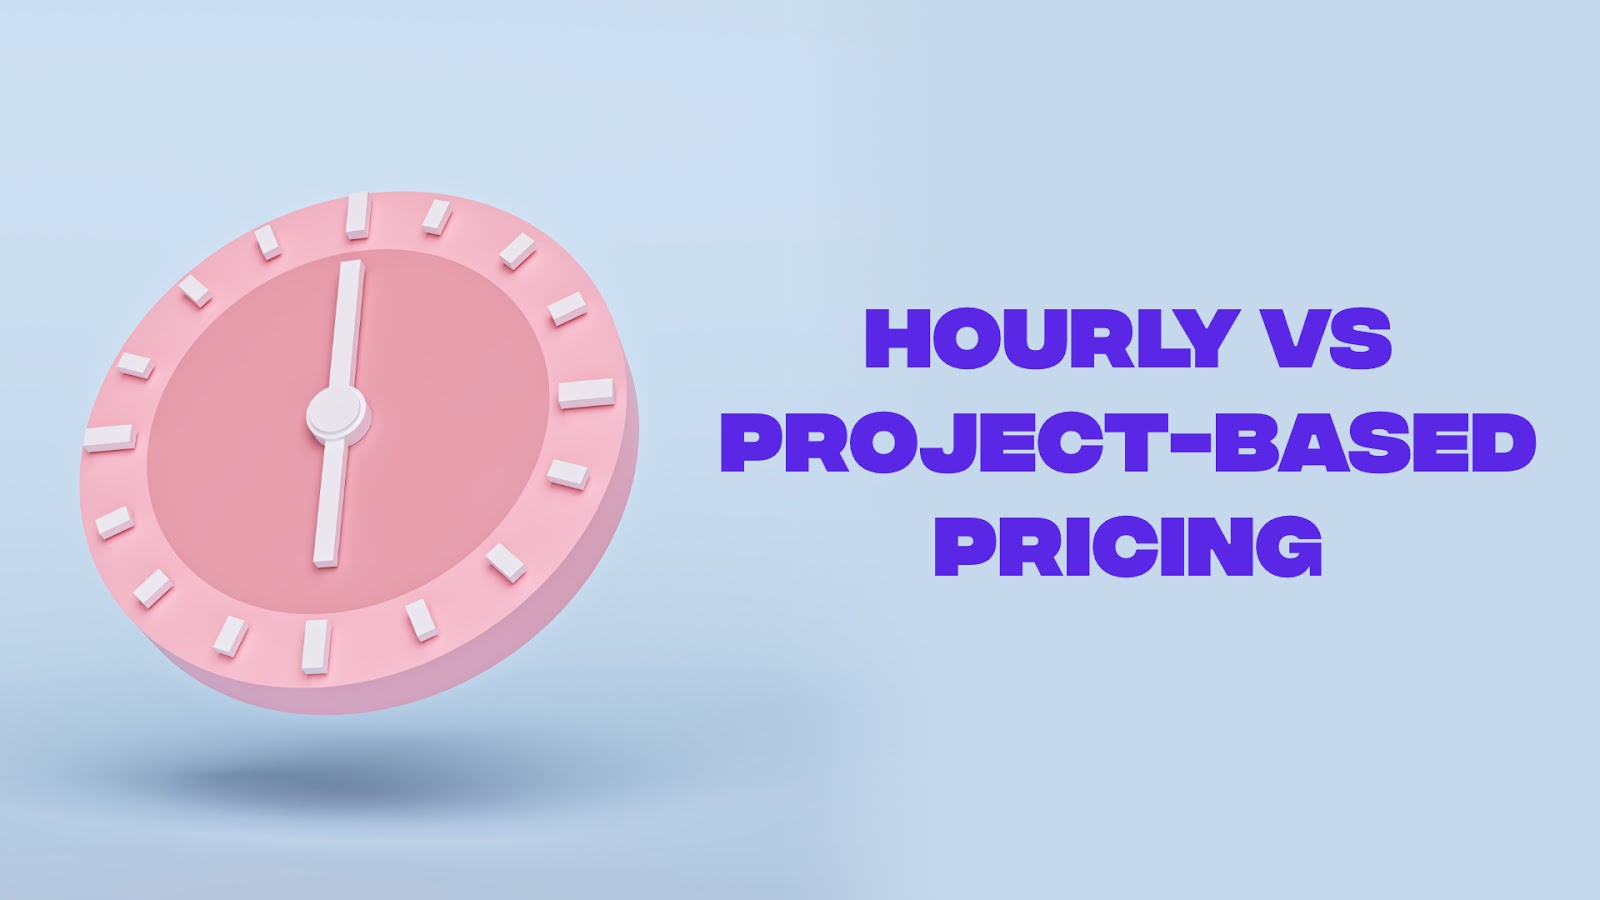 Hourly vs project-based pricing